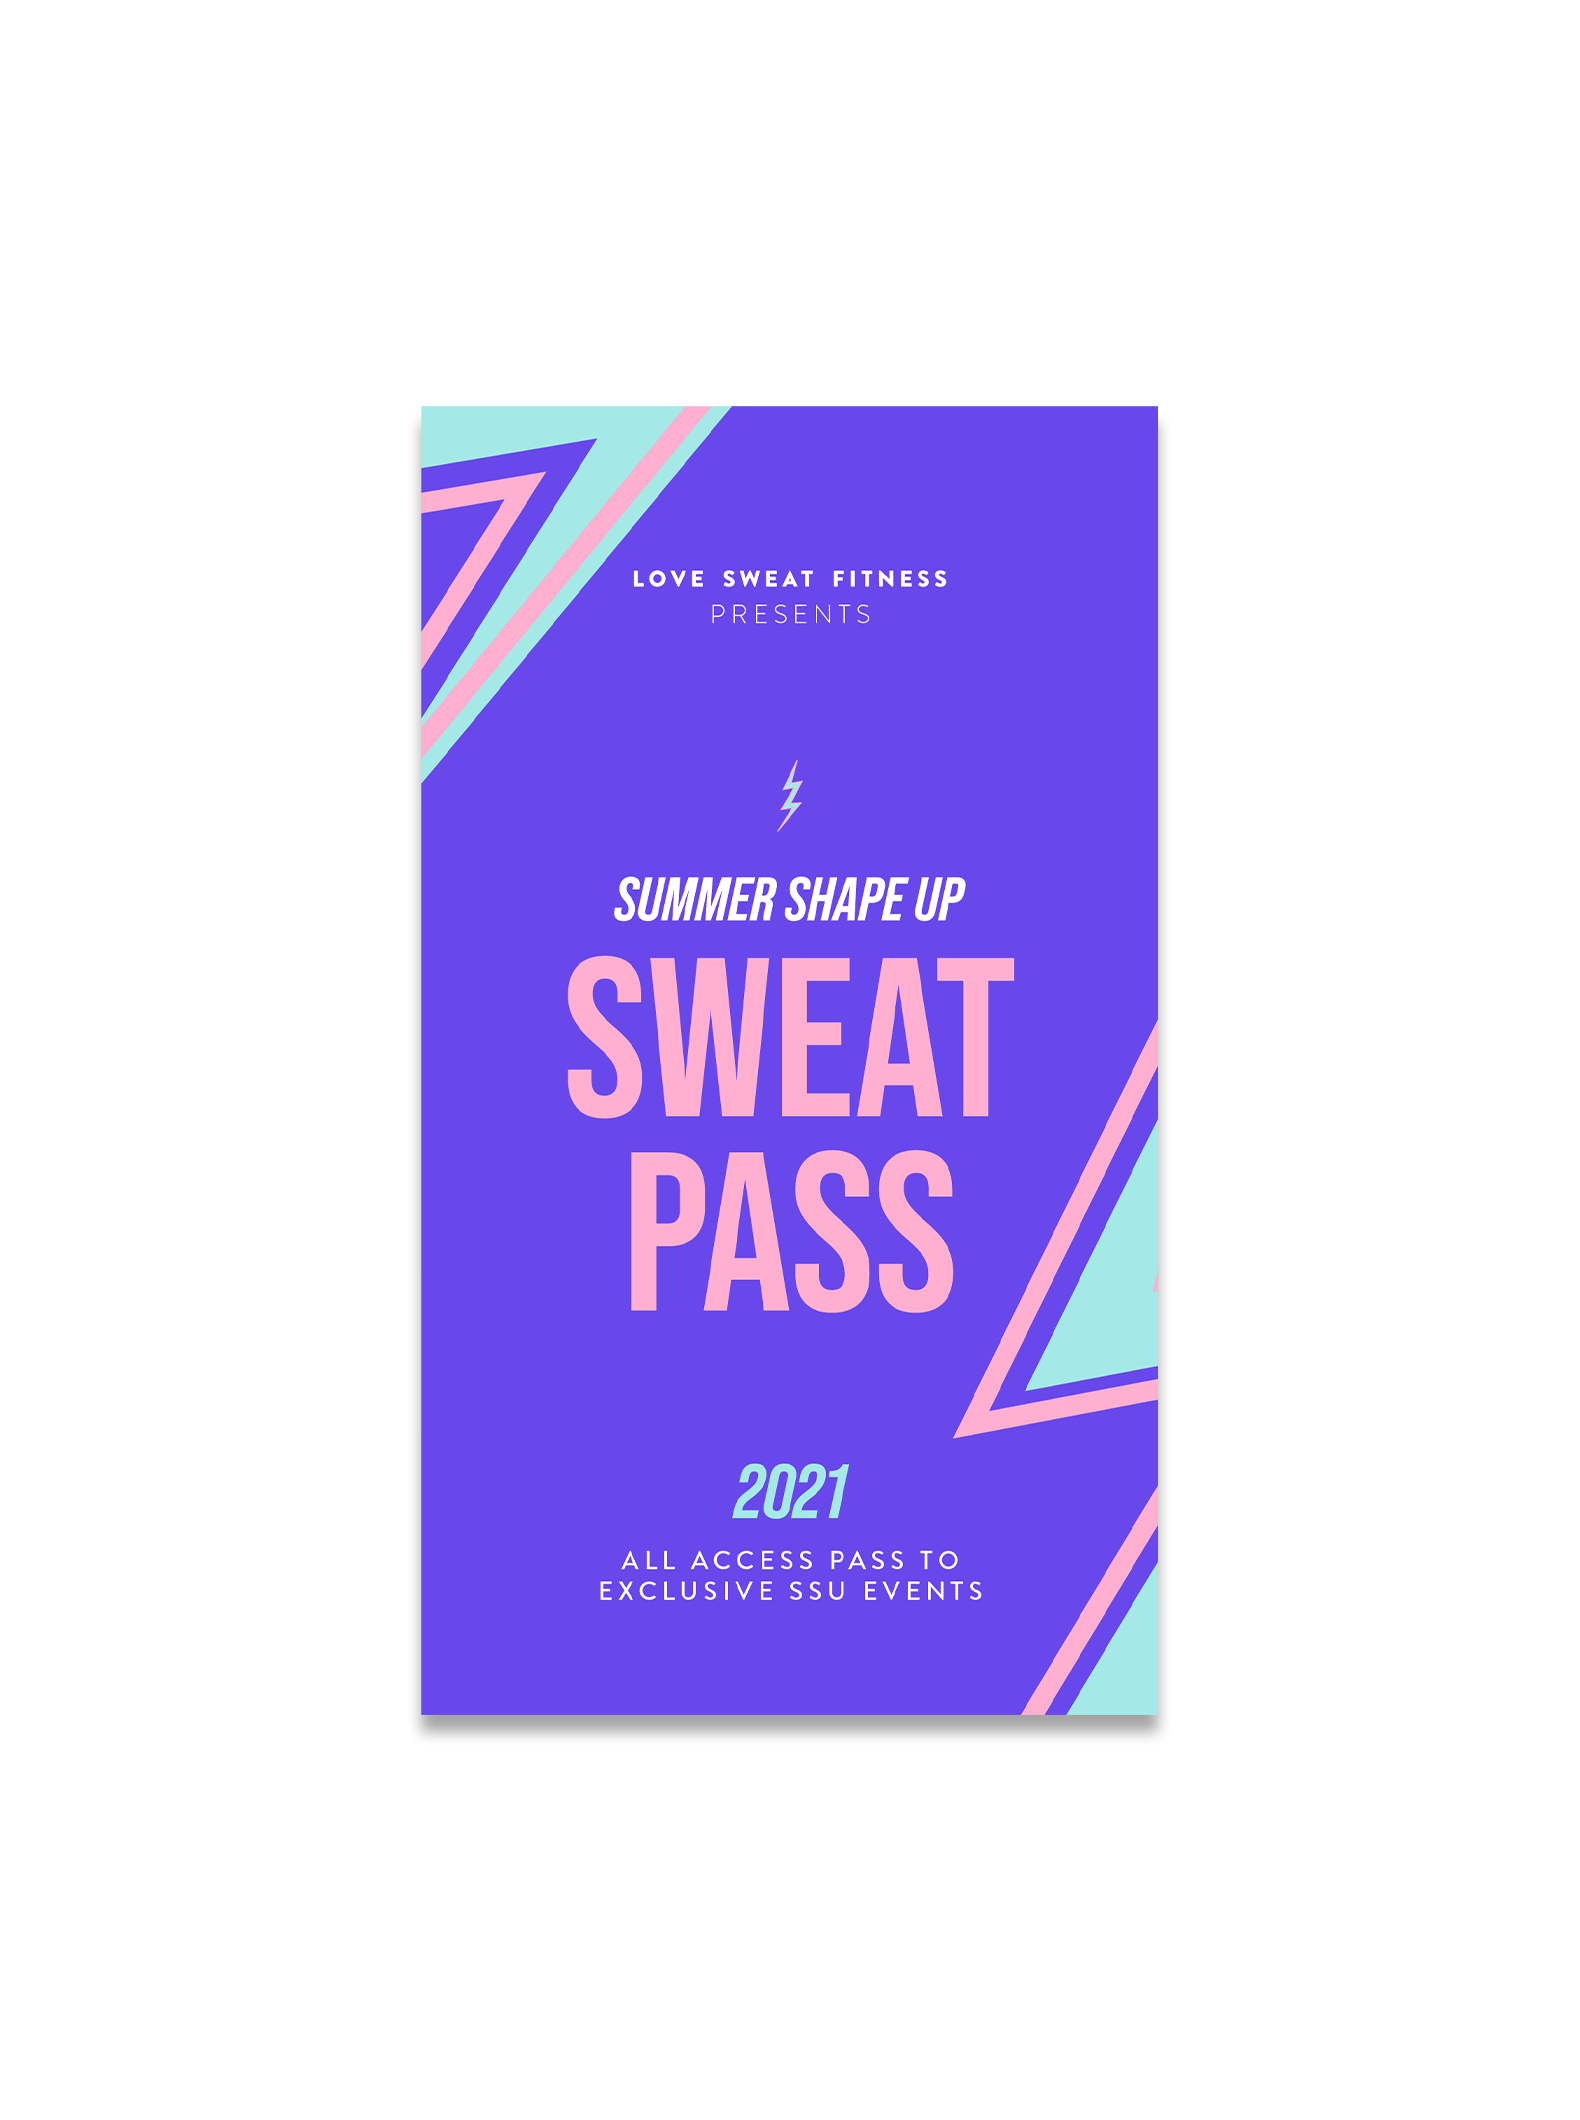 GET YOUR VIP SWEAT PASS